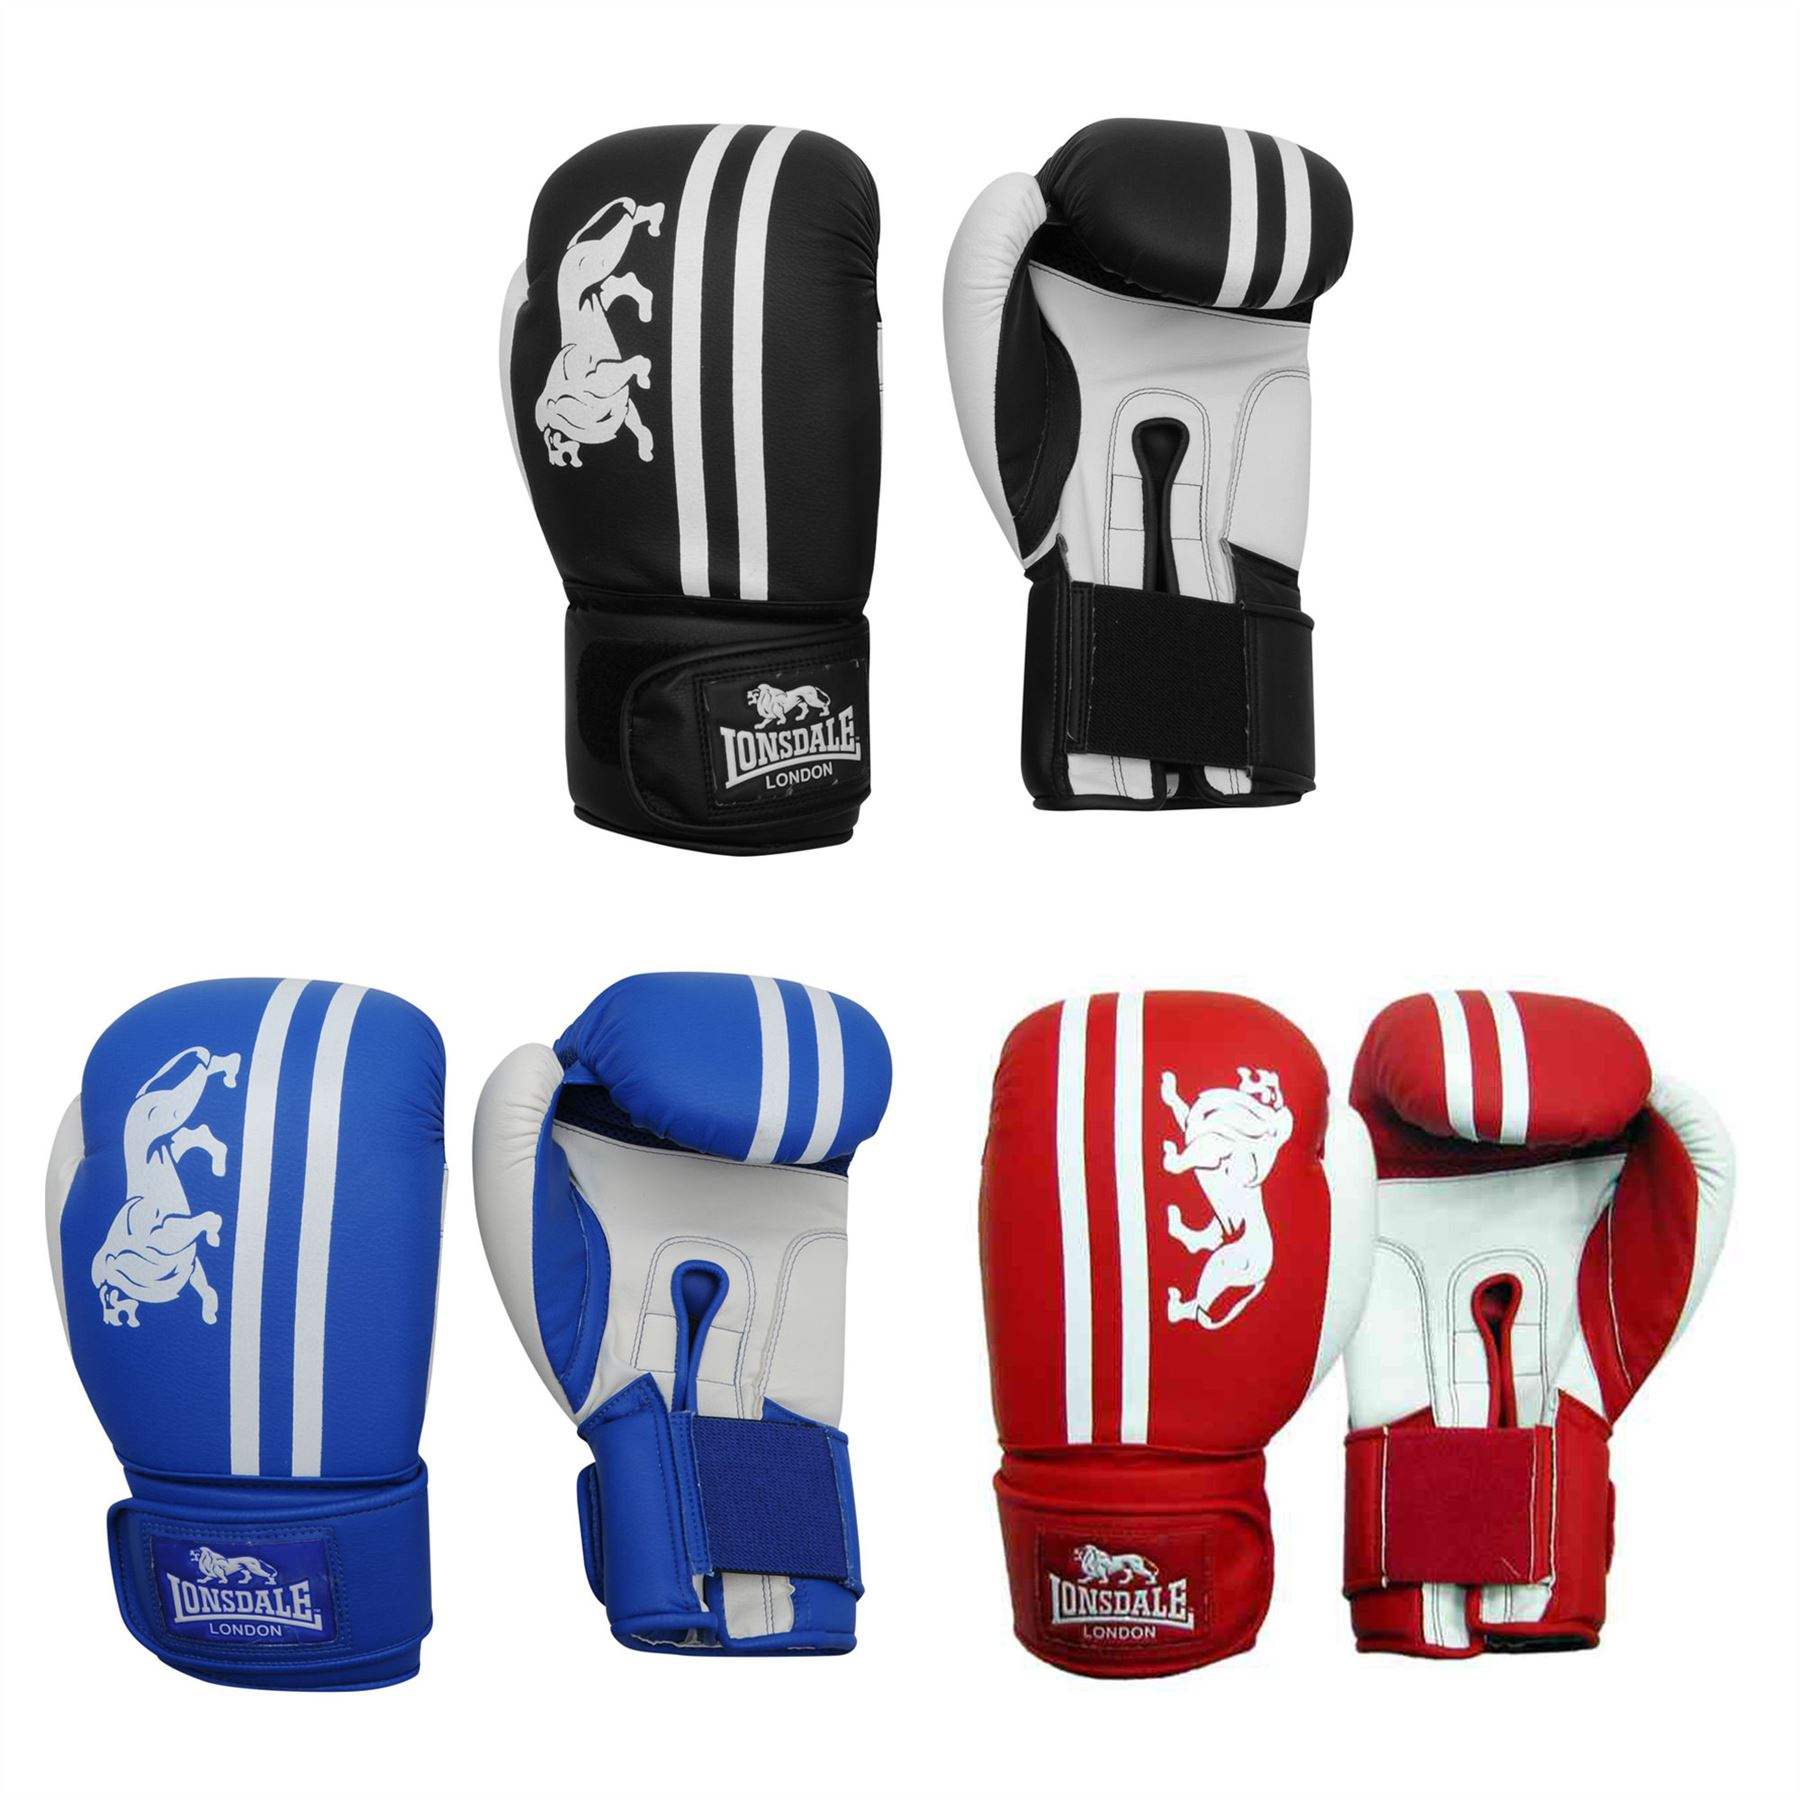 Lonsdale Club Sparring Boxing Gloves Black//White Gym Training Gloves